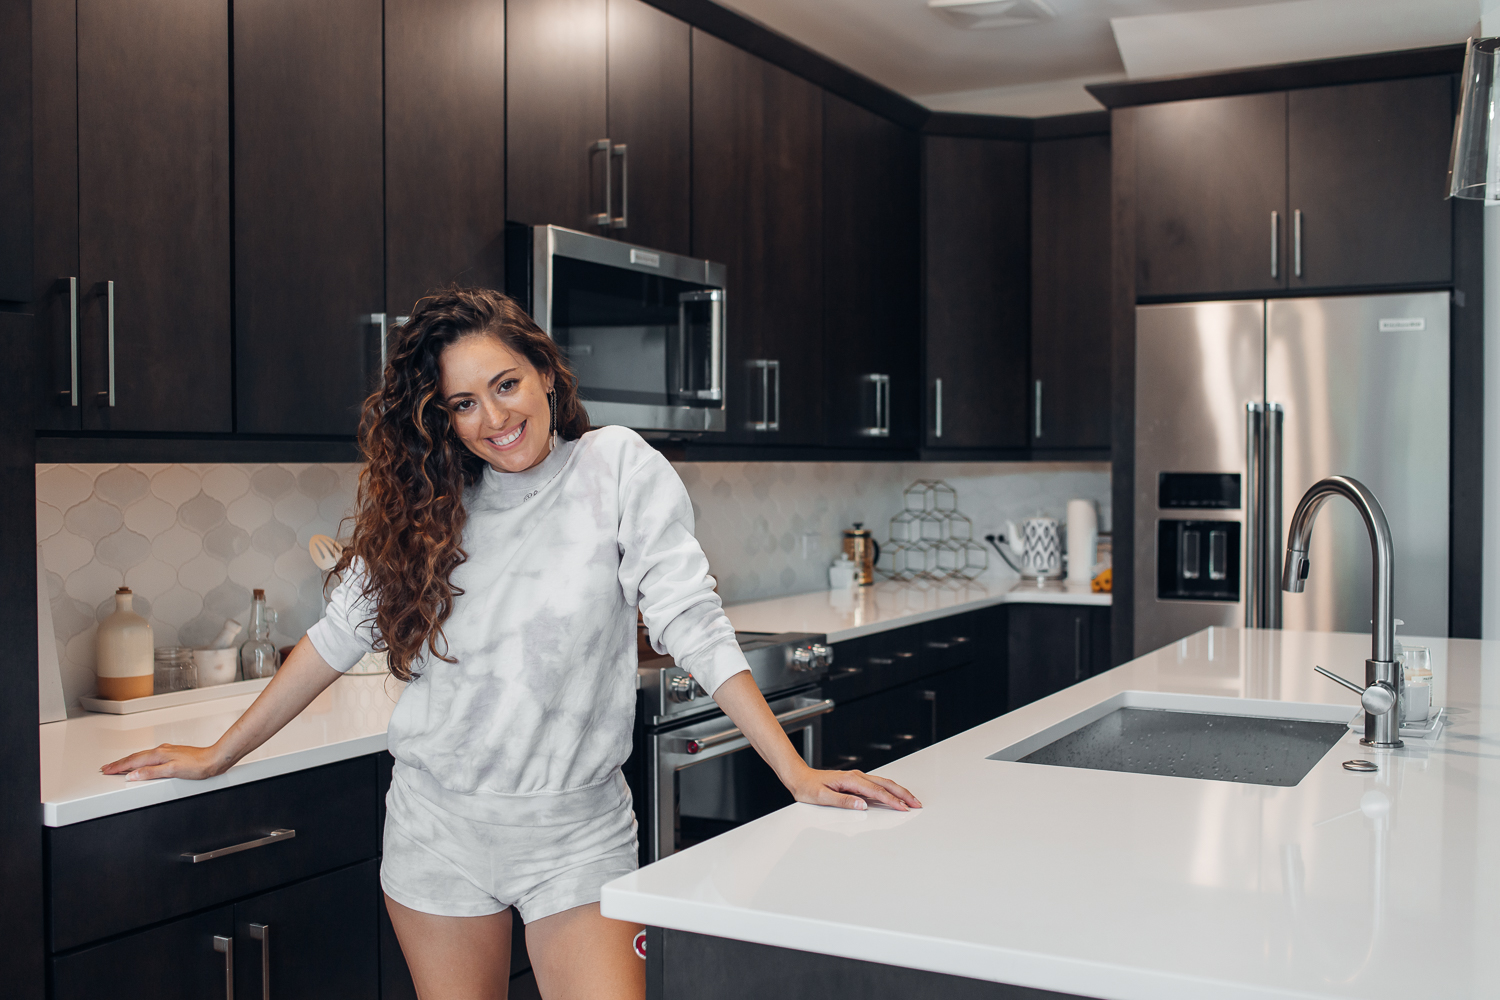 woman standing in kitchen smiling